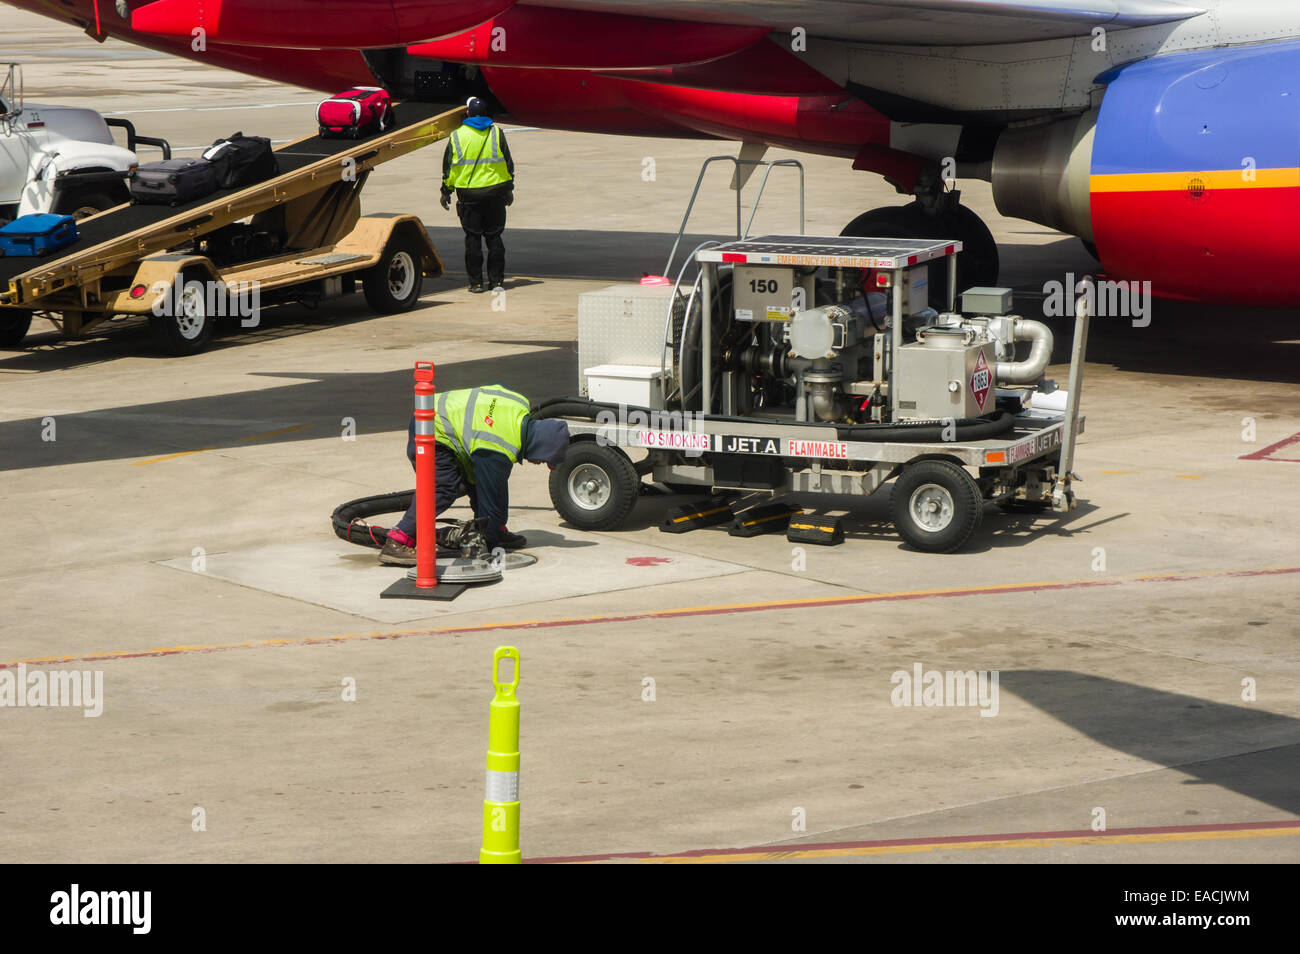 Southwest Airlines jet being refueled and loaded with luggage. - Stock Image